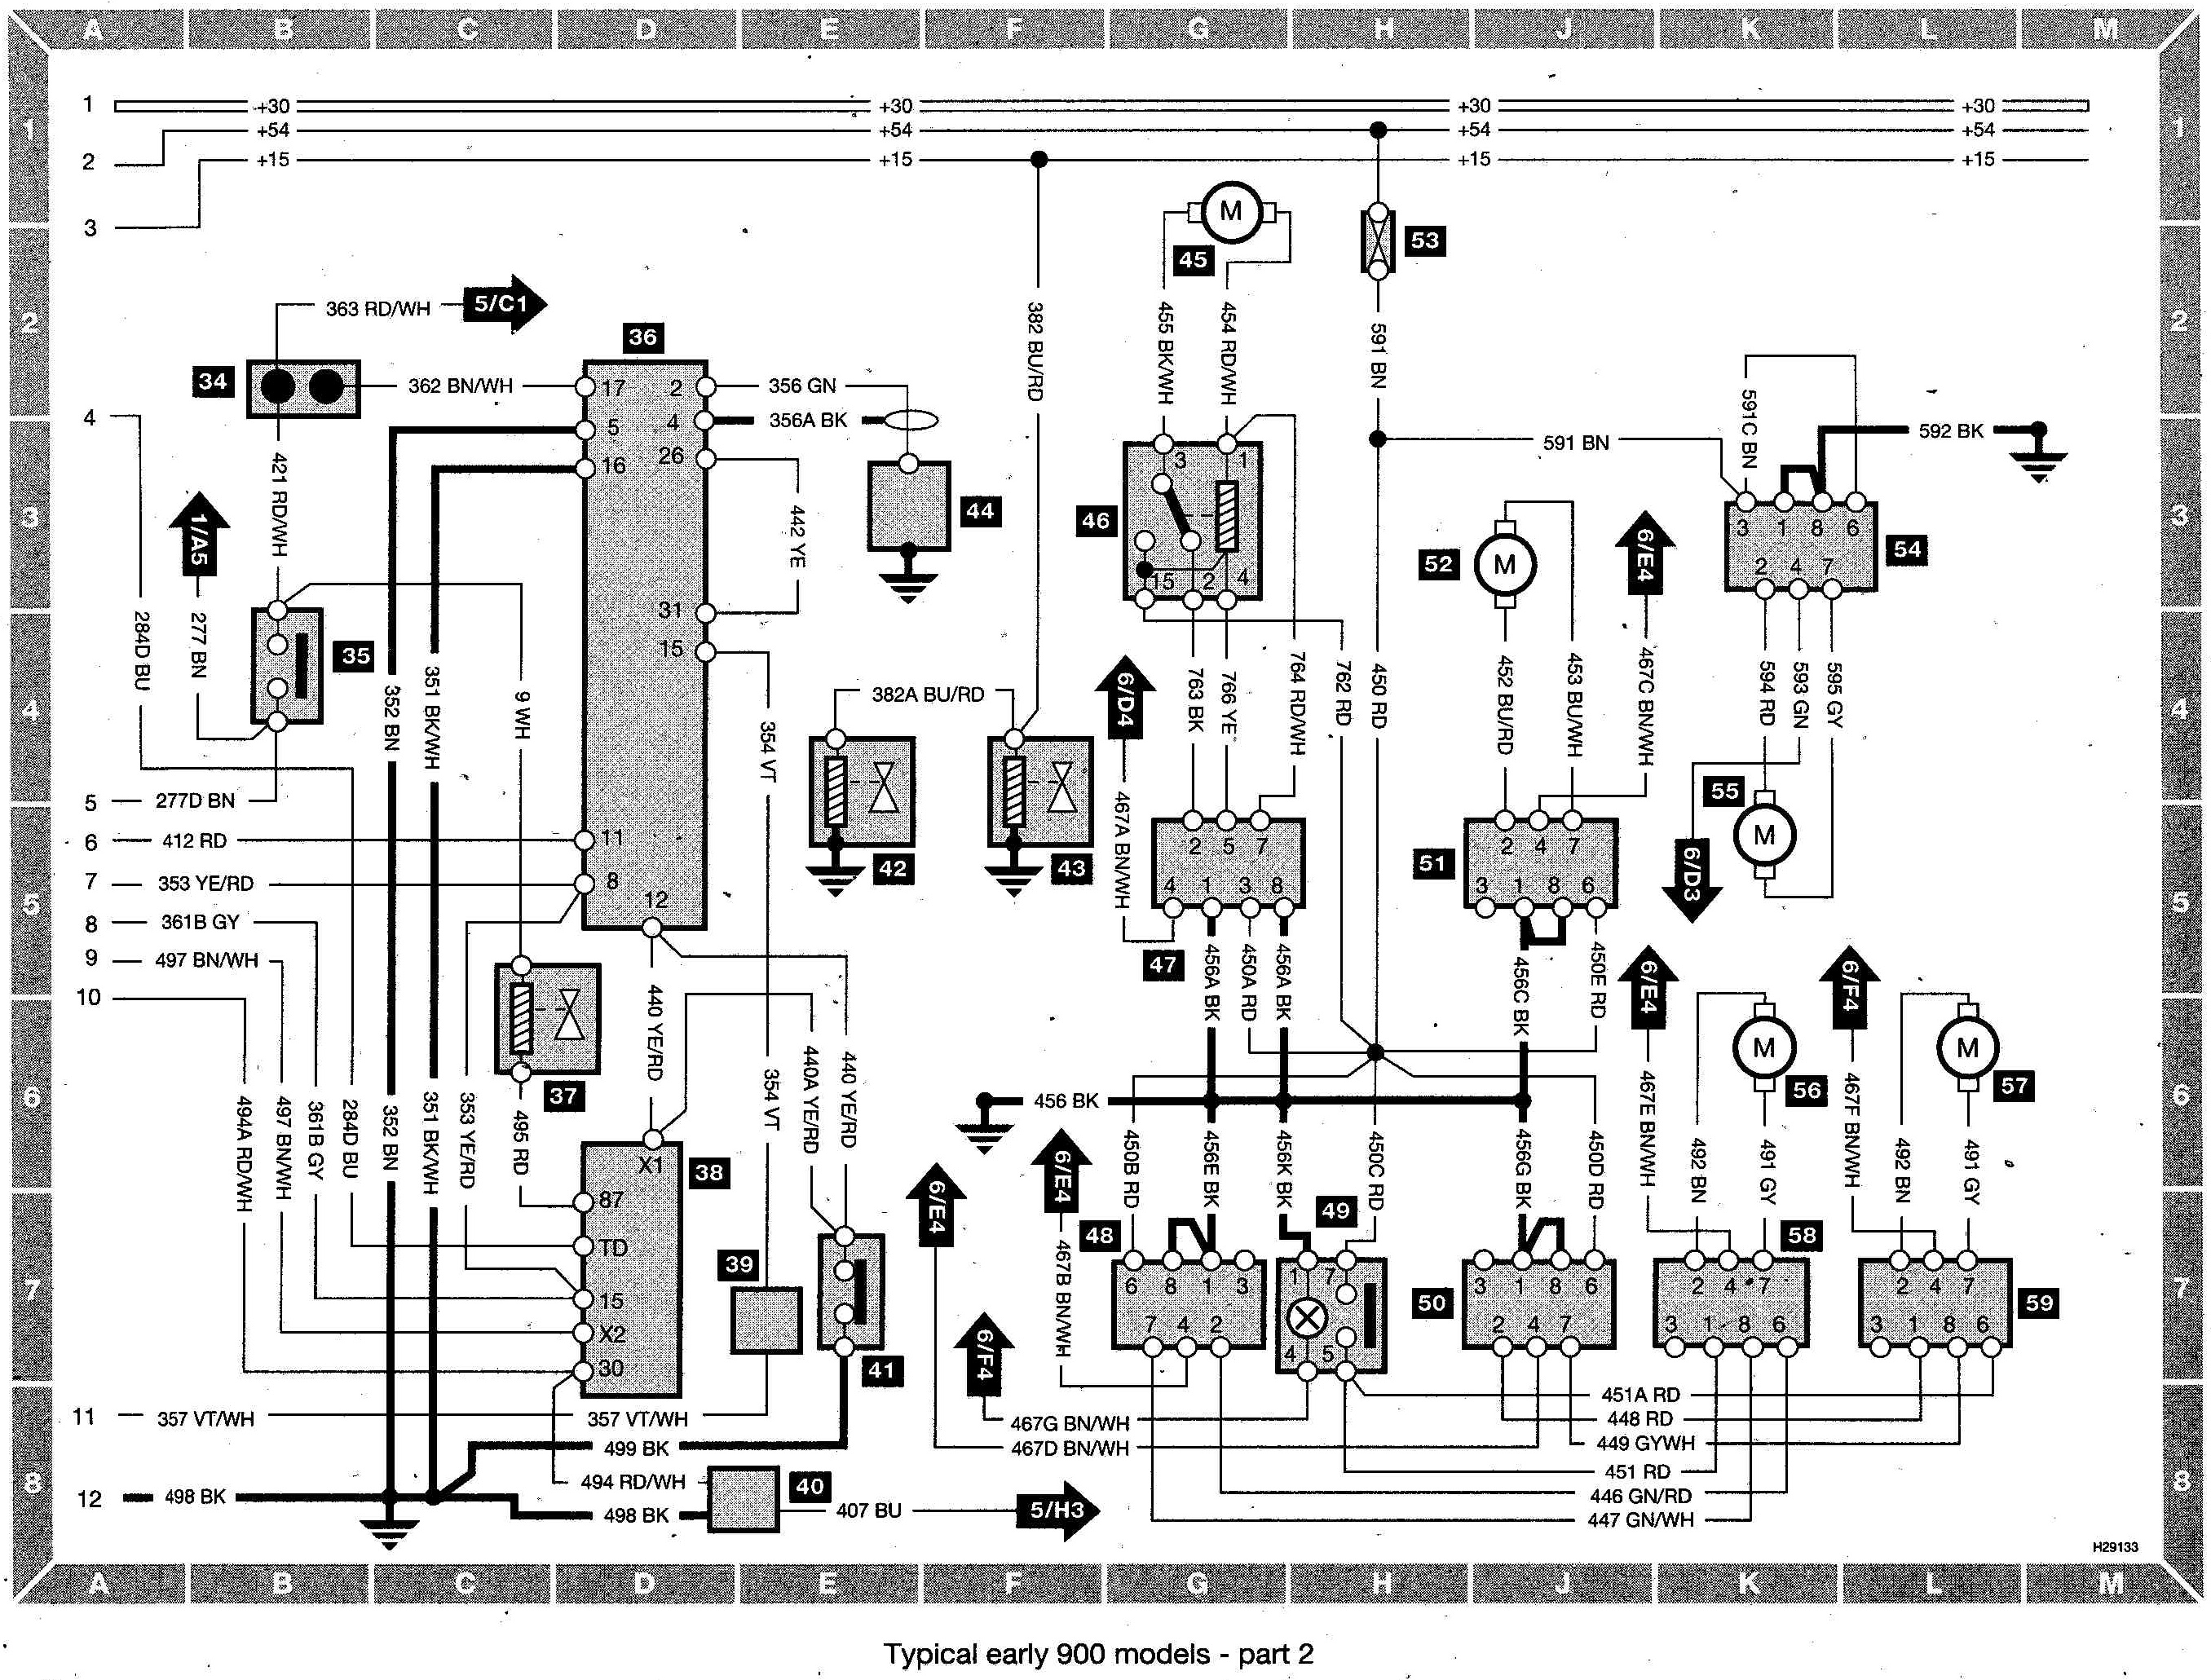 medium resolution of saab turbo diagram wiring diagrams saab 900 turbo vacuum diagram saab turbo diagram